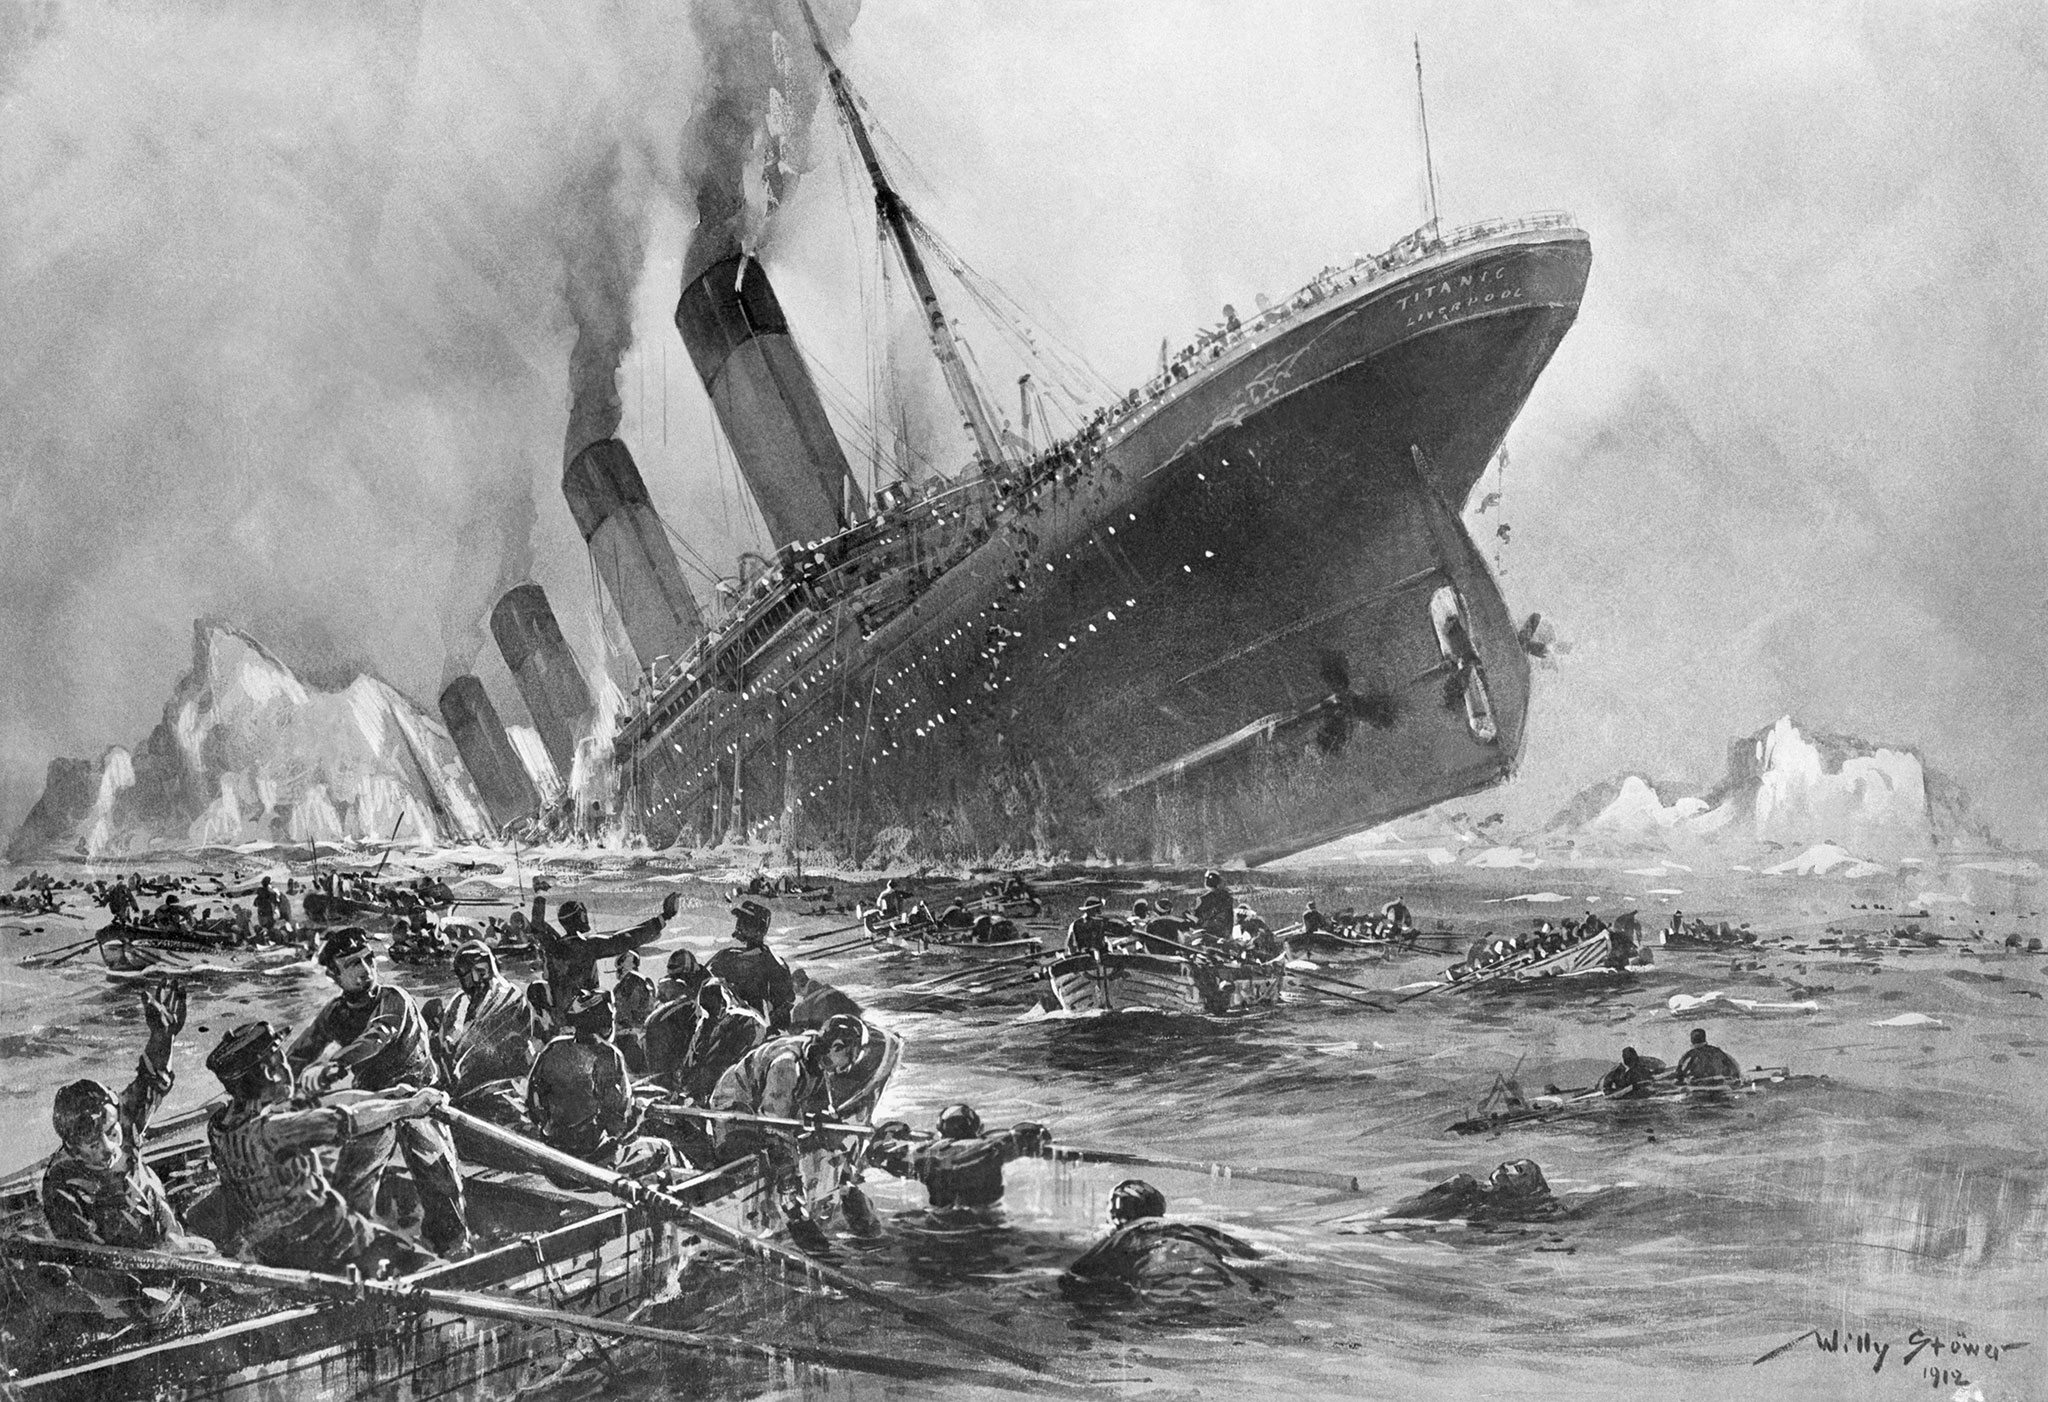 who sank the titanic essay The sinking of the titanic when you think of the titanic, you probably think of the love story between jack dawson and rose dewittbekator, but what the titanic really is, is a british passenger ship weighing in at 63,000 tons and 882 feet long.